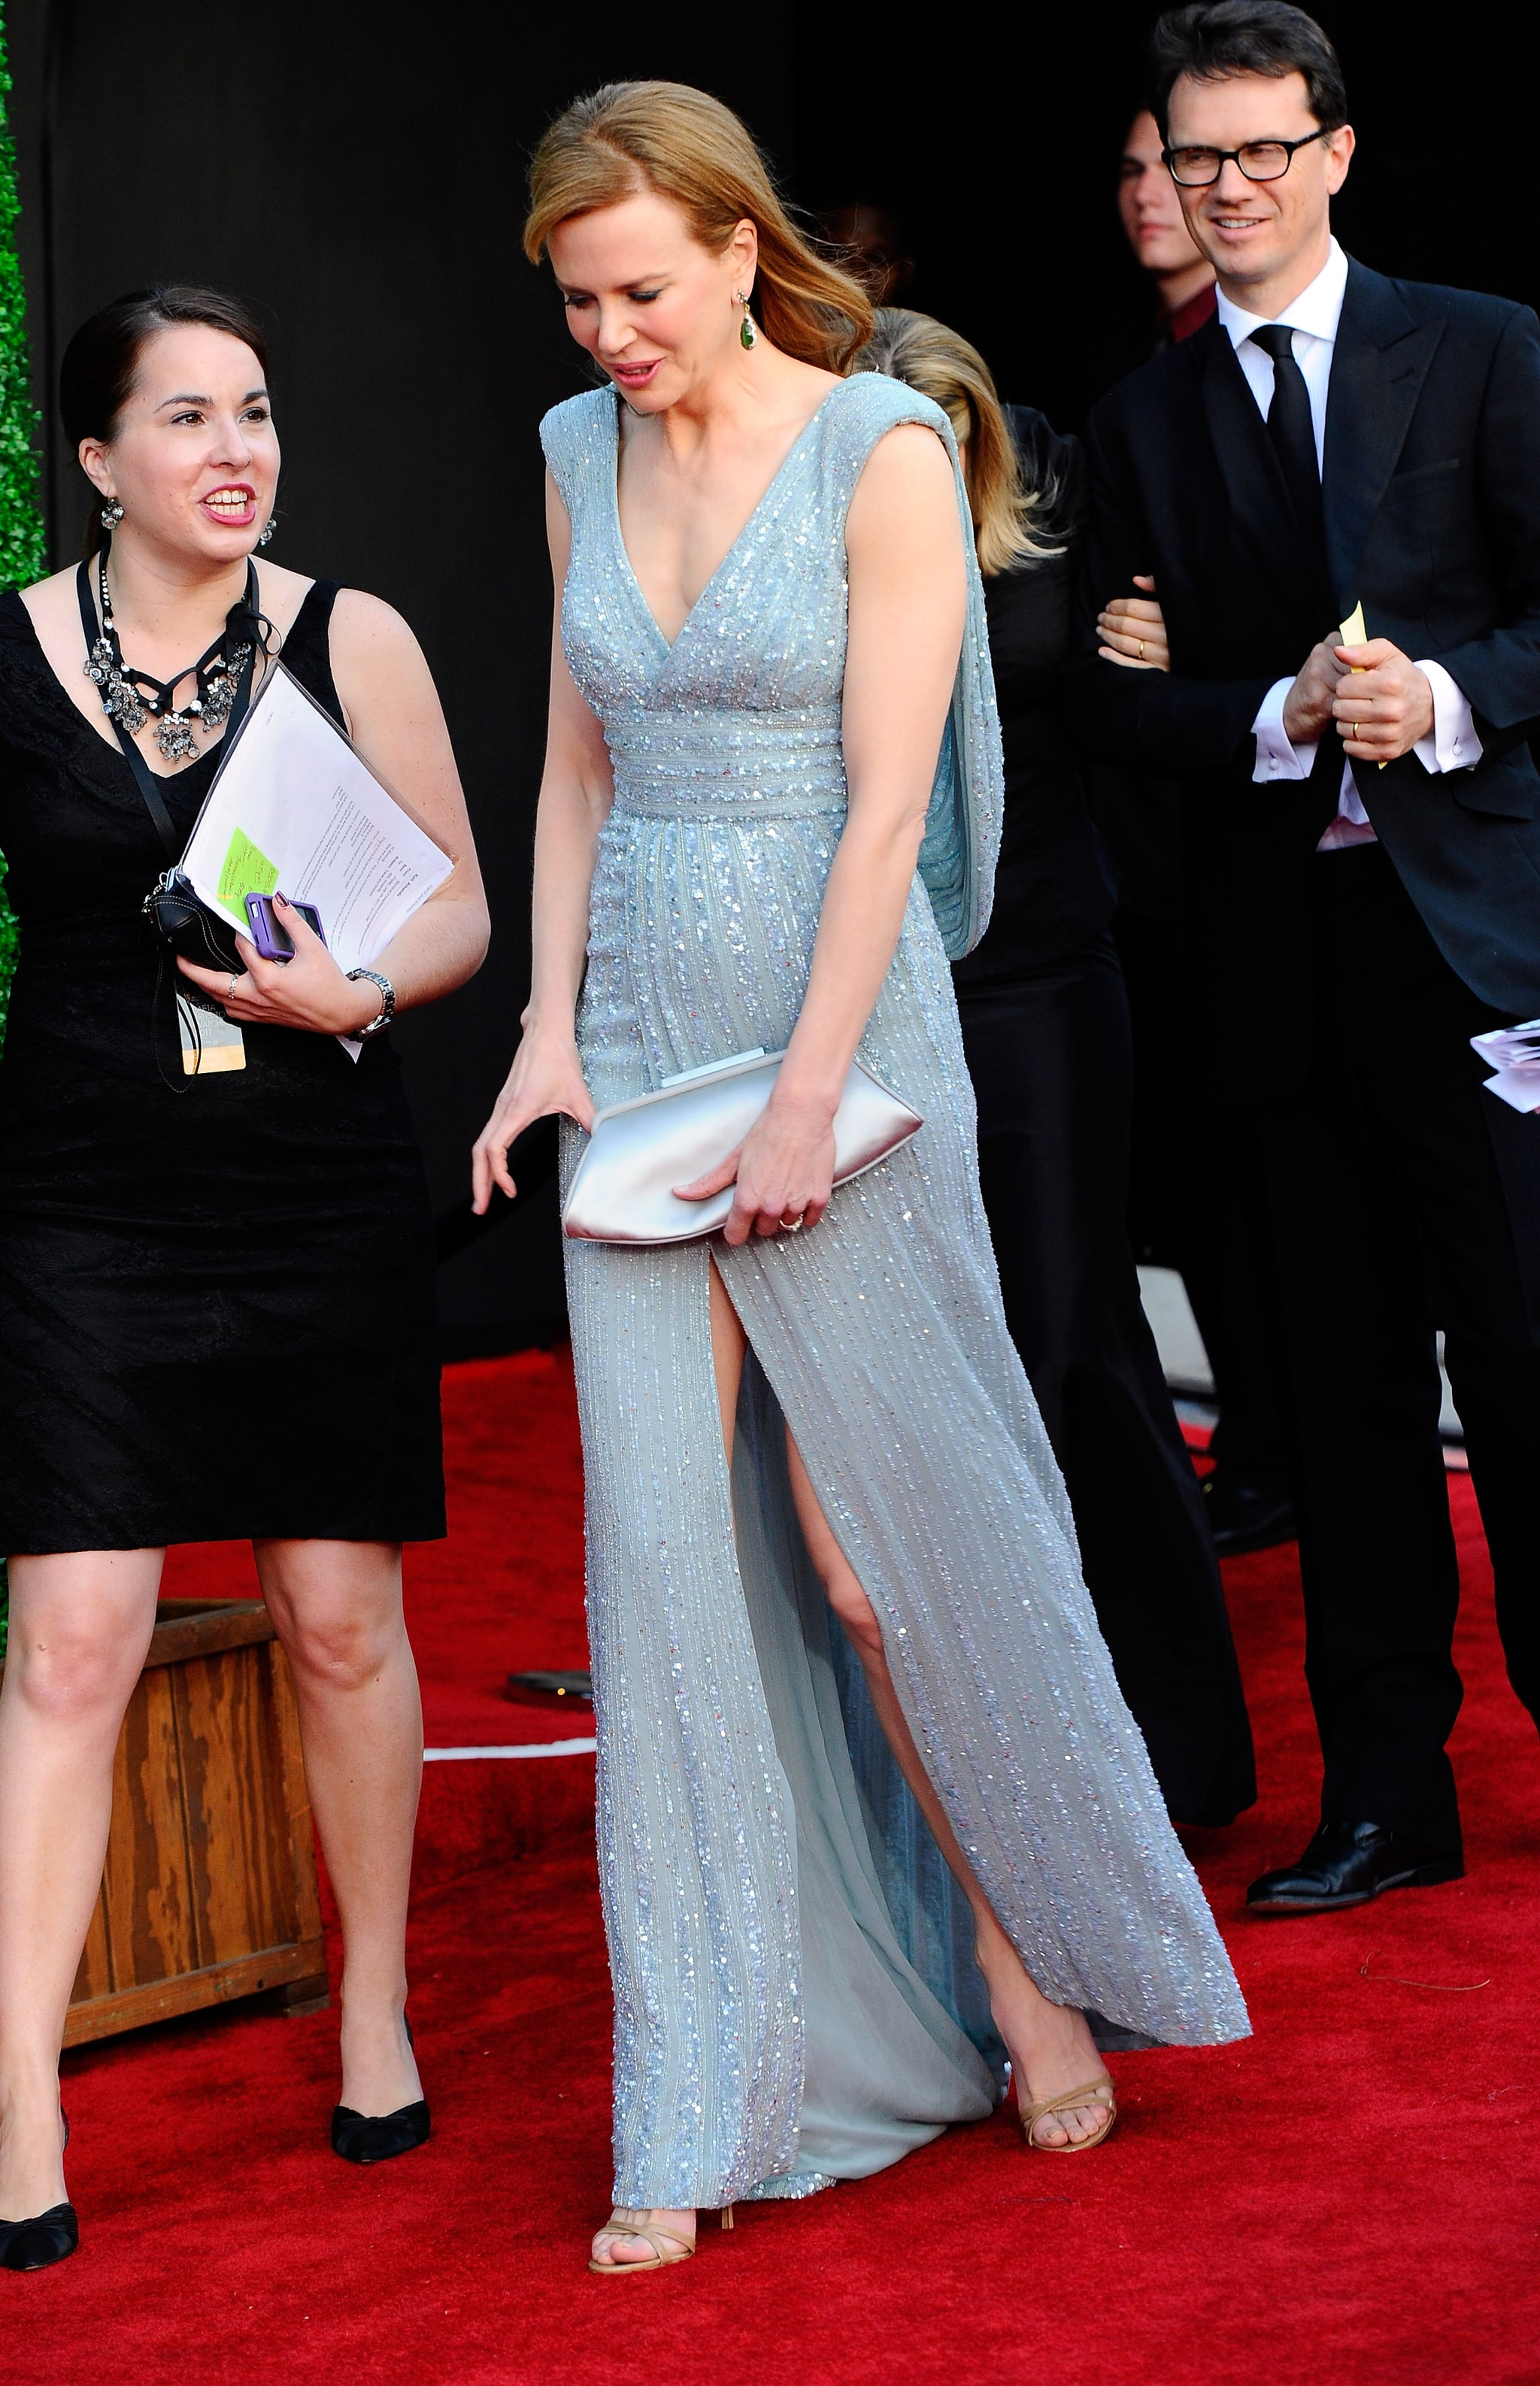 Nicole Kidman in blue at the BAFTA Brits to Watch event in LA.